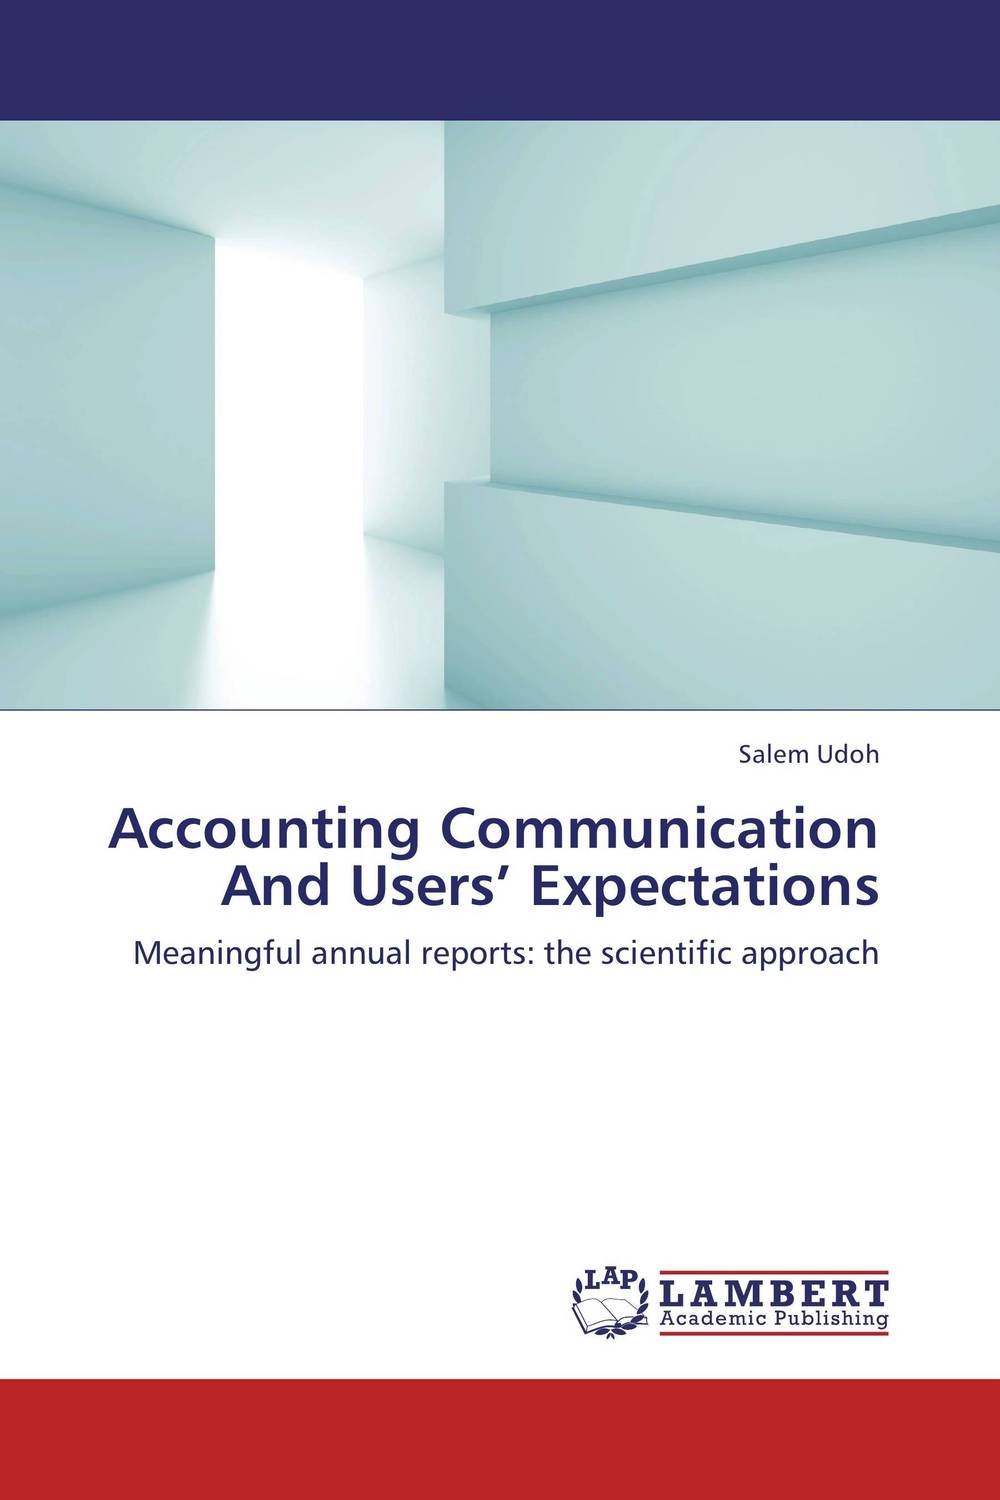 Accounting Communication And Users' Expectations